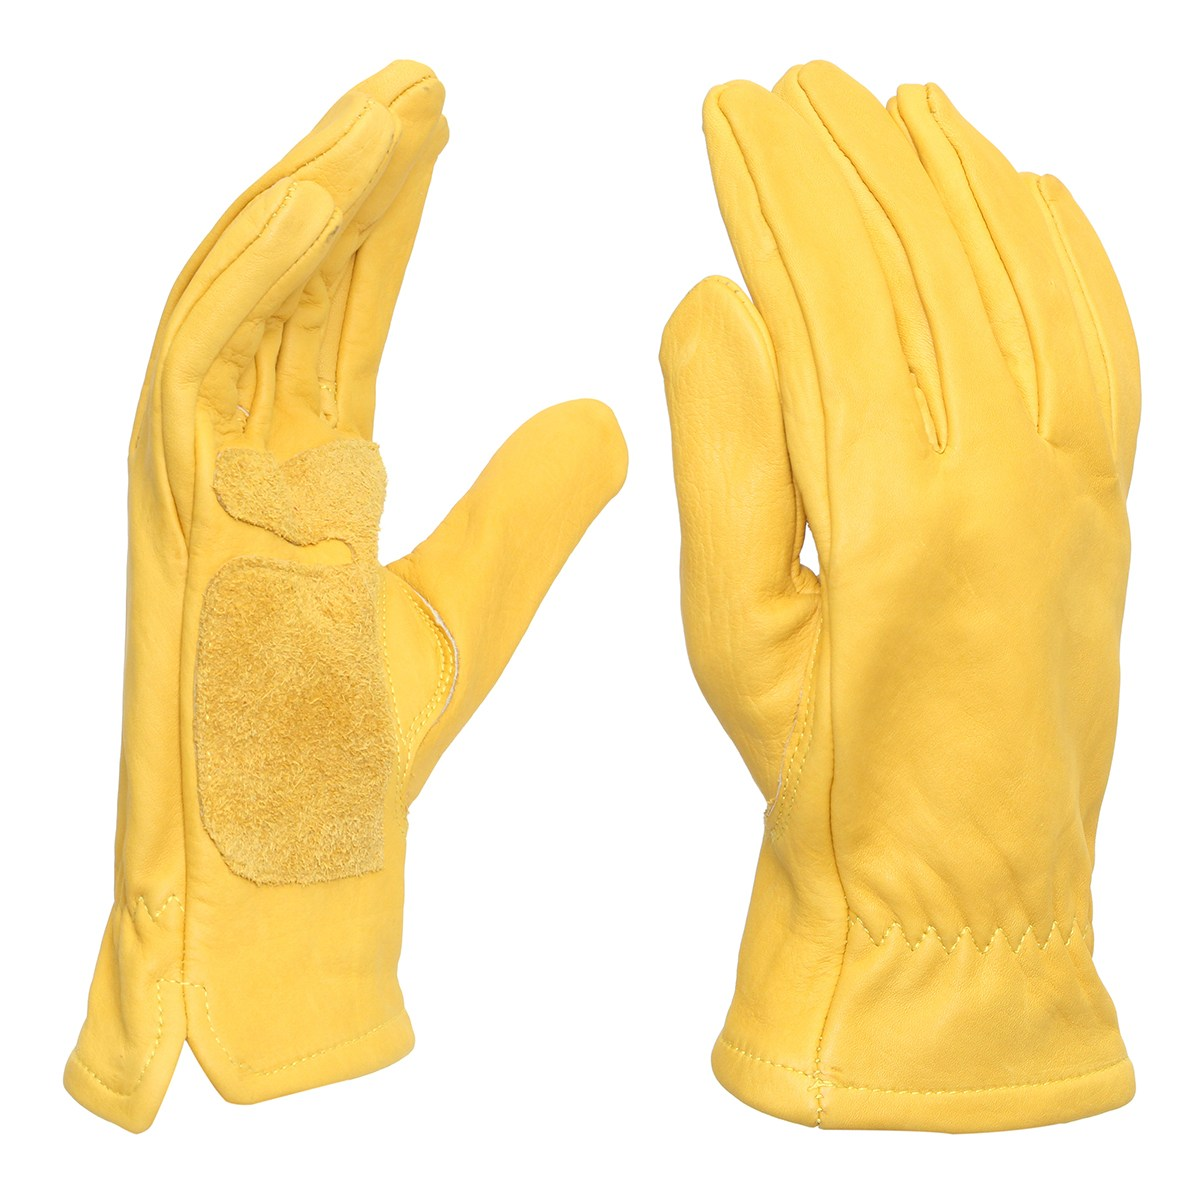 Pair Vintage Motorcycle Bicycle Gloves Yellow Universal Anti-slip Scooter Work Hunting Full Finger Gloves M L XL XXL